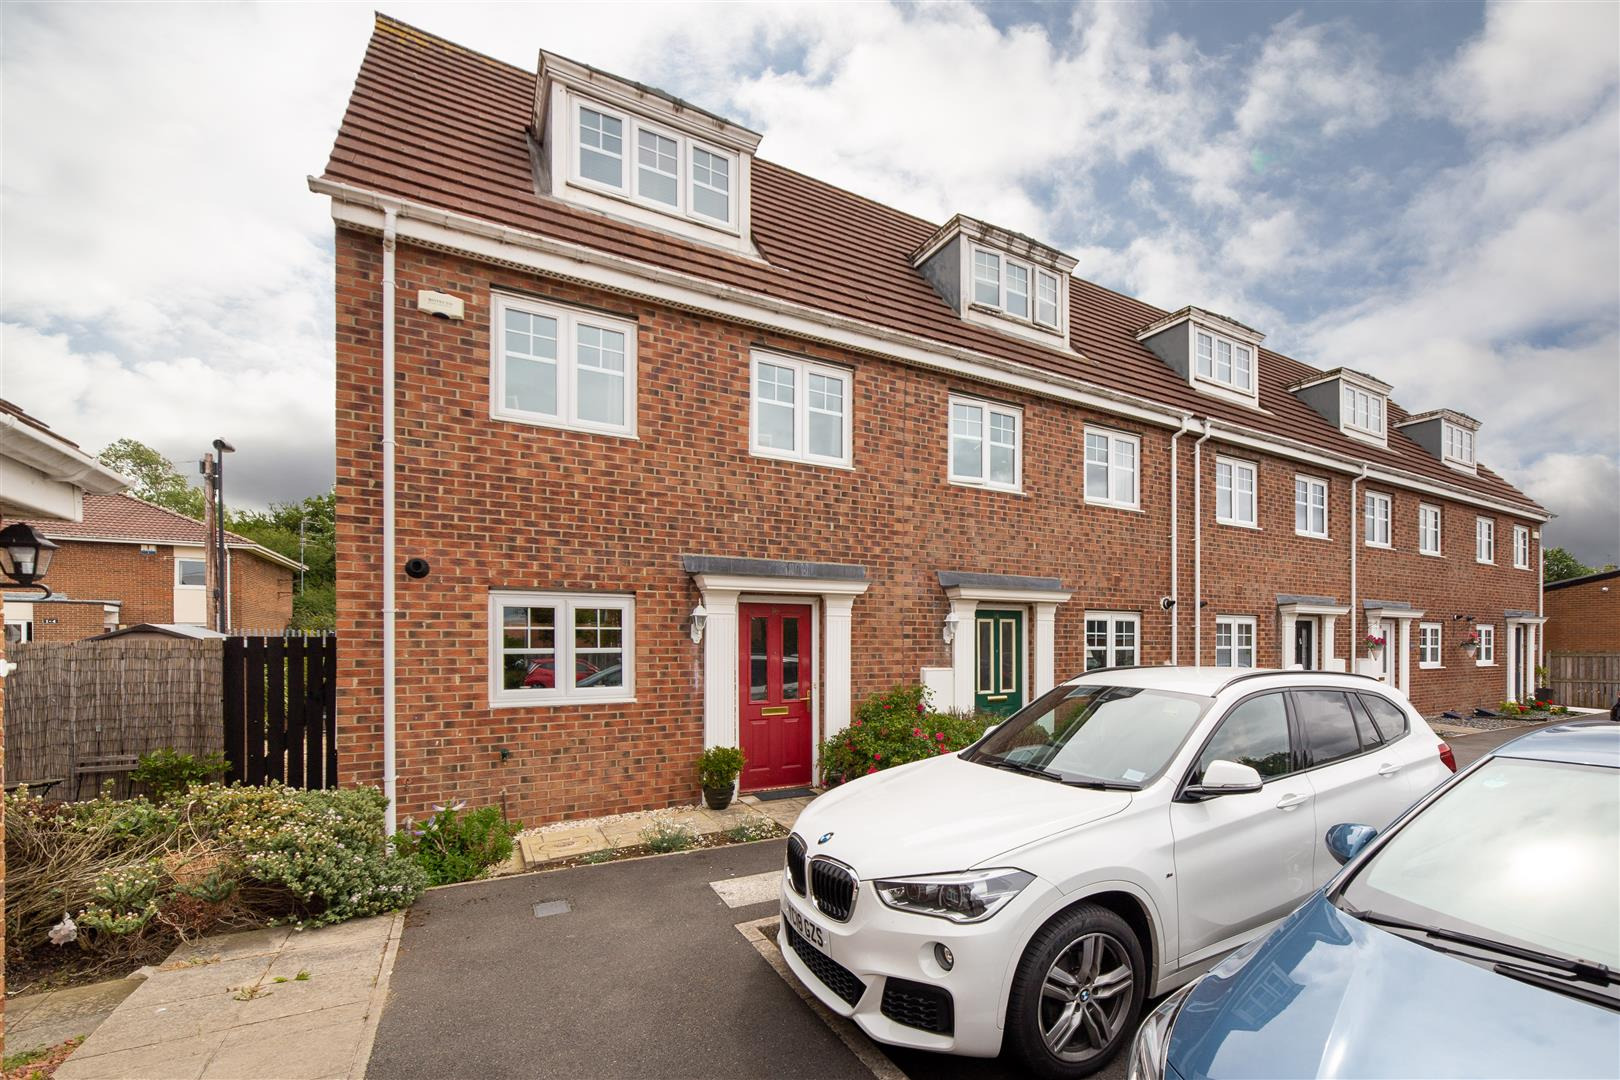 3 bed town house for sale in Longbenton, NE12 8TN  - Property Image 1